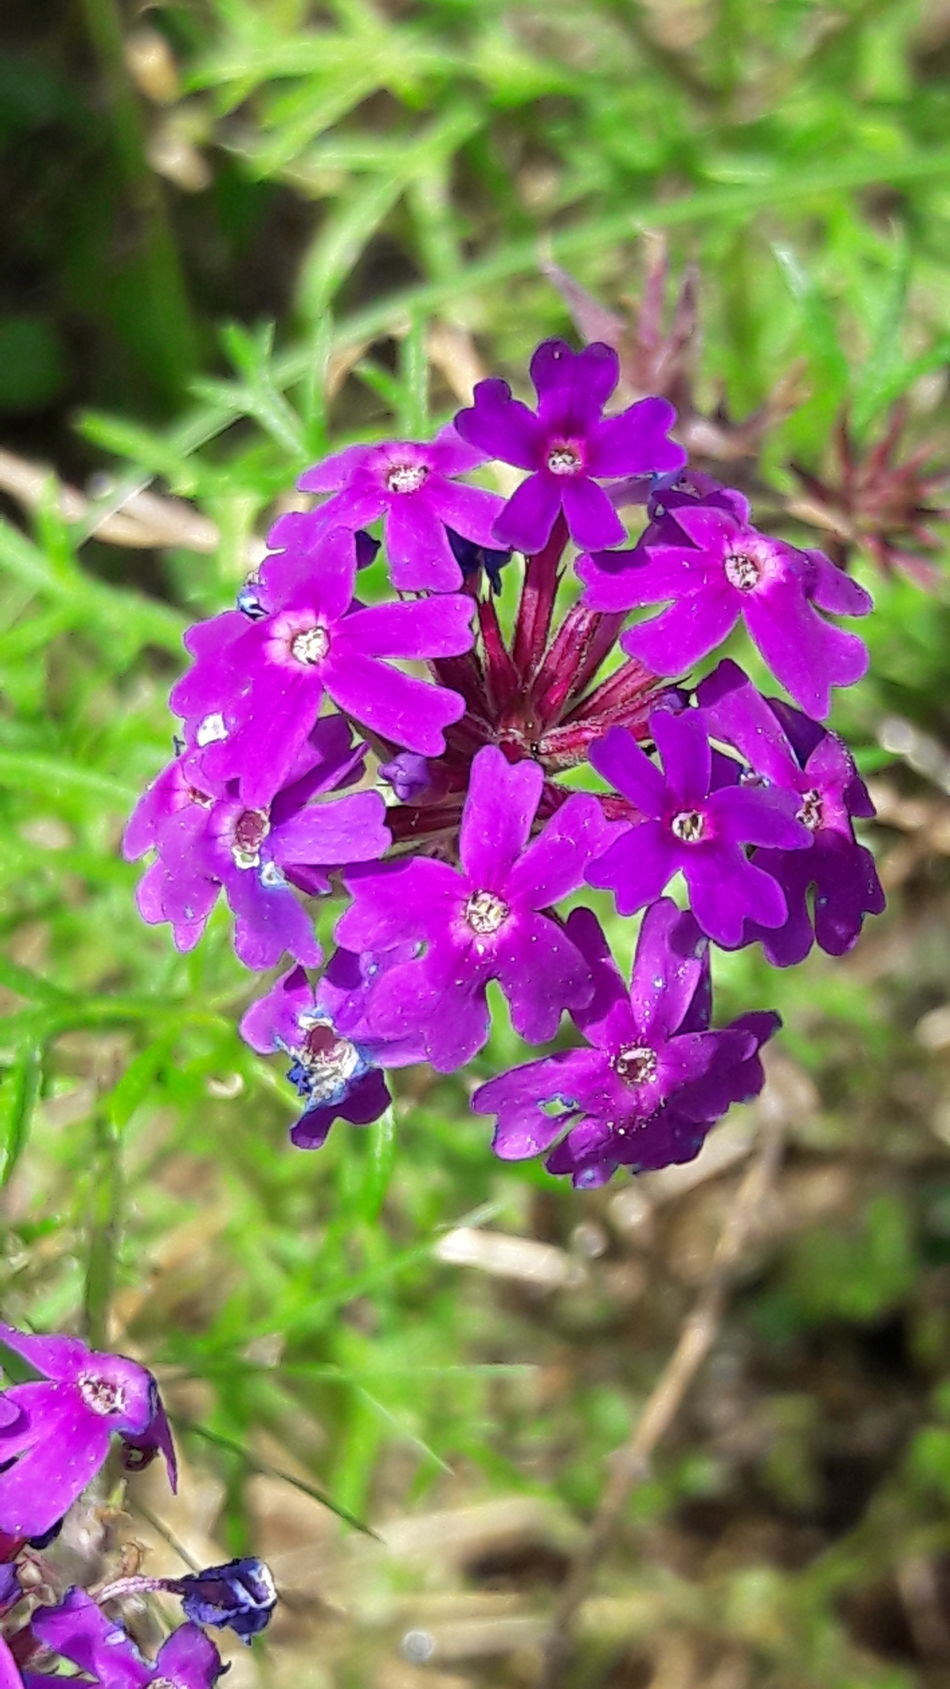 And then there's purple... 💜💜💜 Flower Purple Nature Freshness Beauty In Nature Flower Head Petal Fragility Plant Close-up Growth Outdoors Blooming No People Day On My Street Popular Photos Flower Photography Flower Collection Beauty In Nature Flowers Springtime Spring Flowers